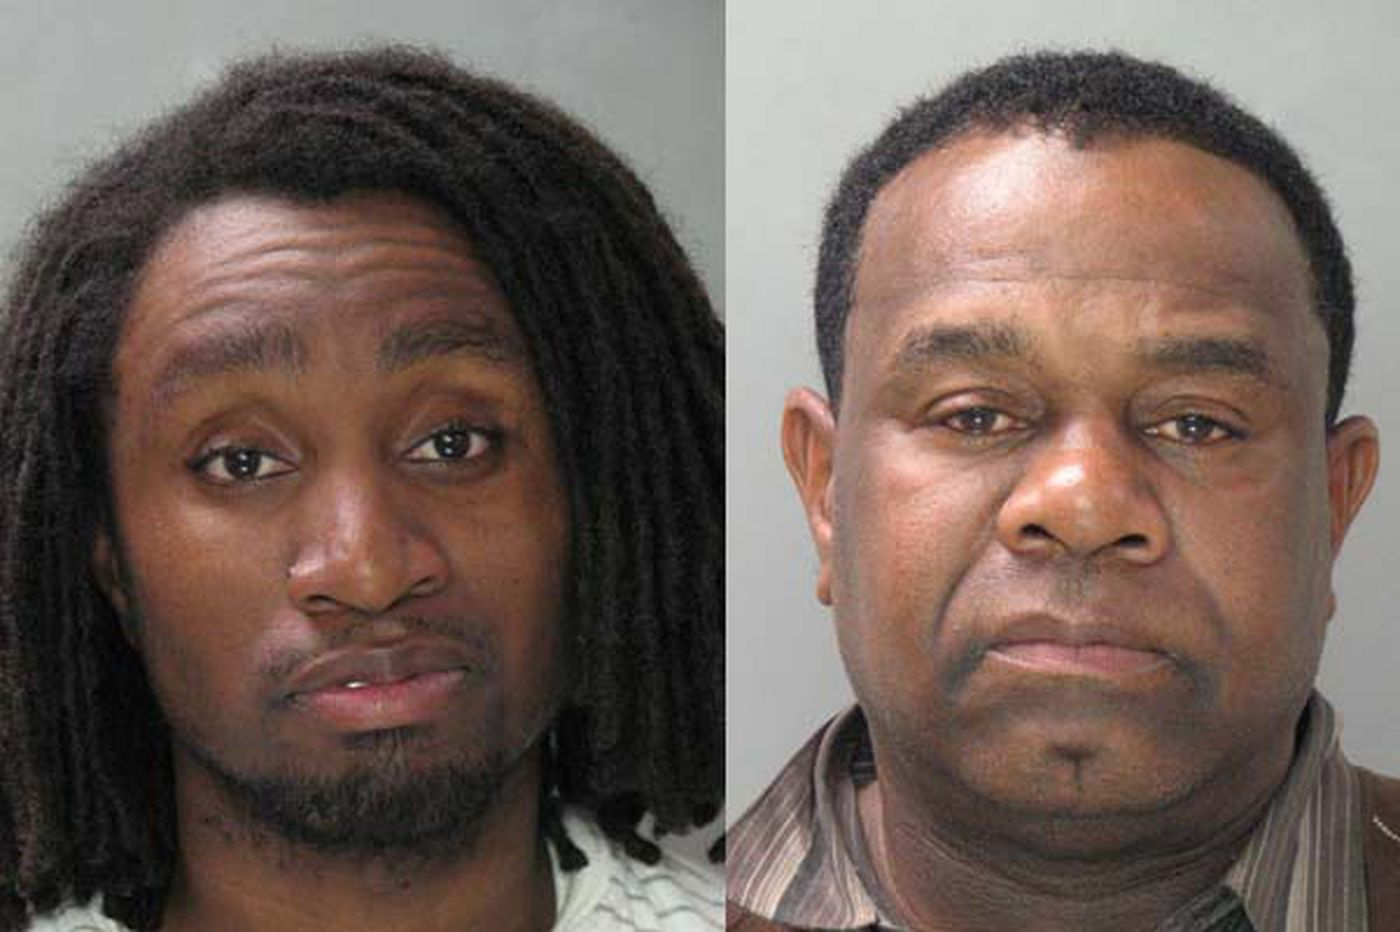 Delco men charged with selling fake goods